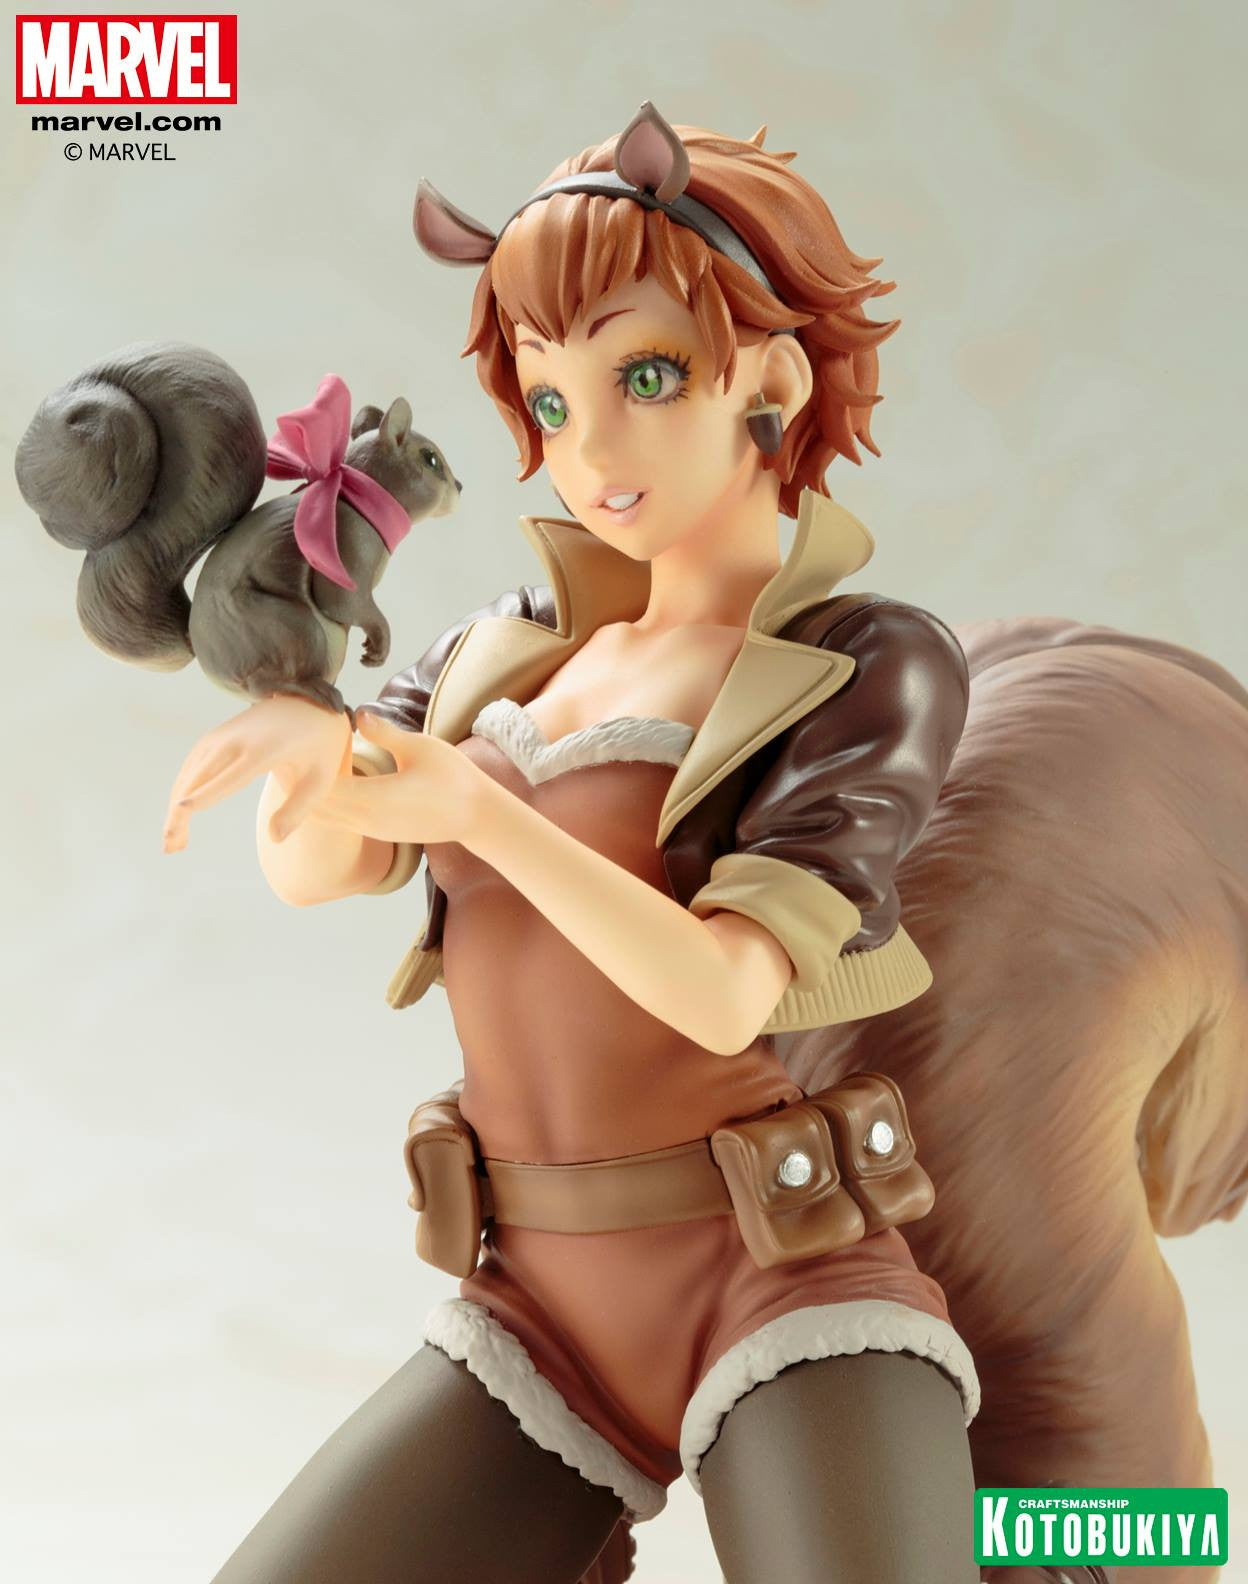 Kotobukiya - Marvel Bishoujo - Squirrel Girl (1/7 Scale) - Marvelous Toys - 6